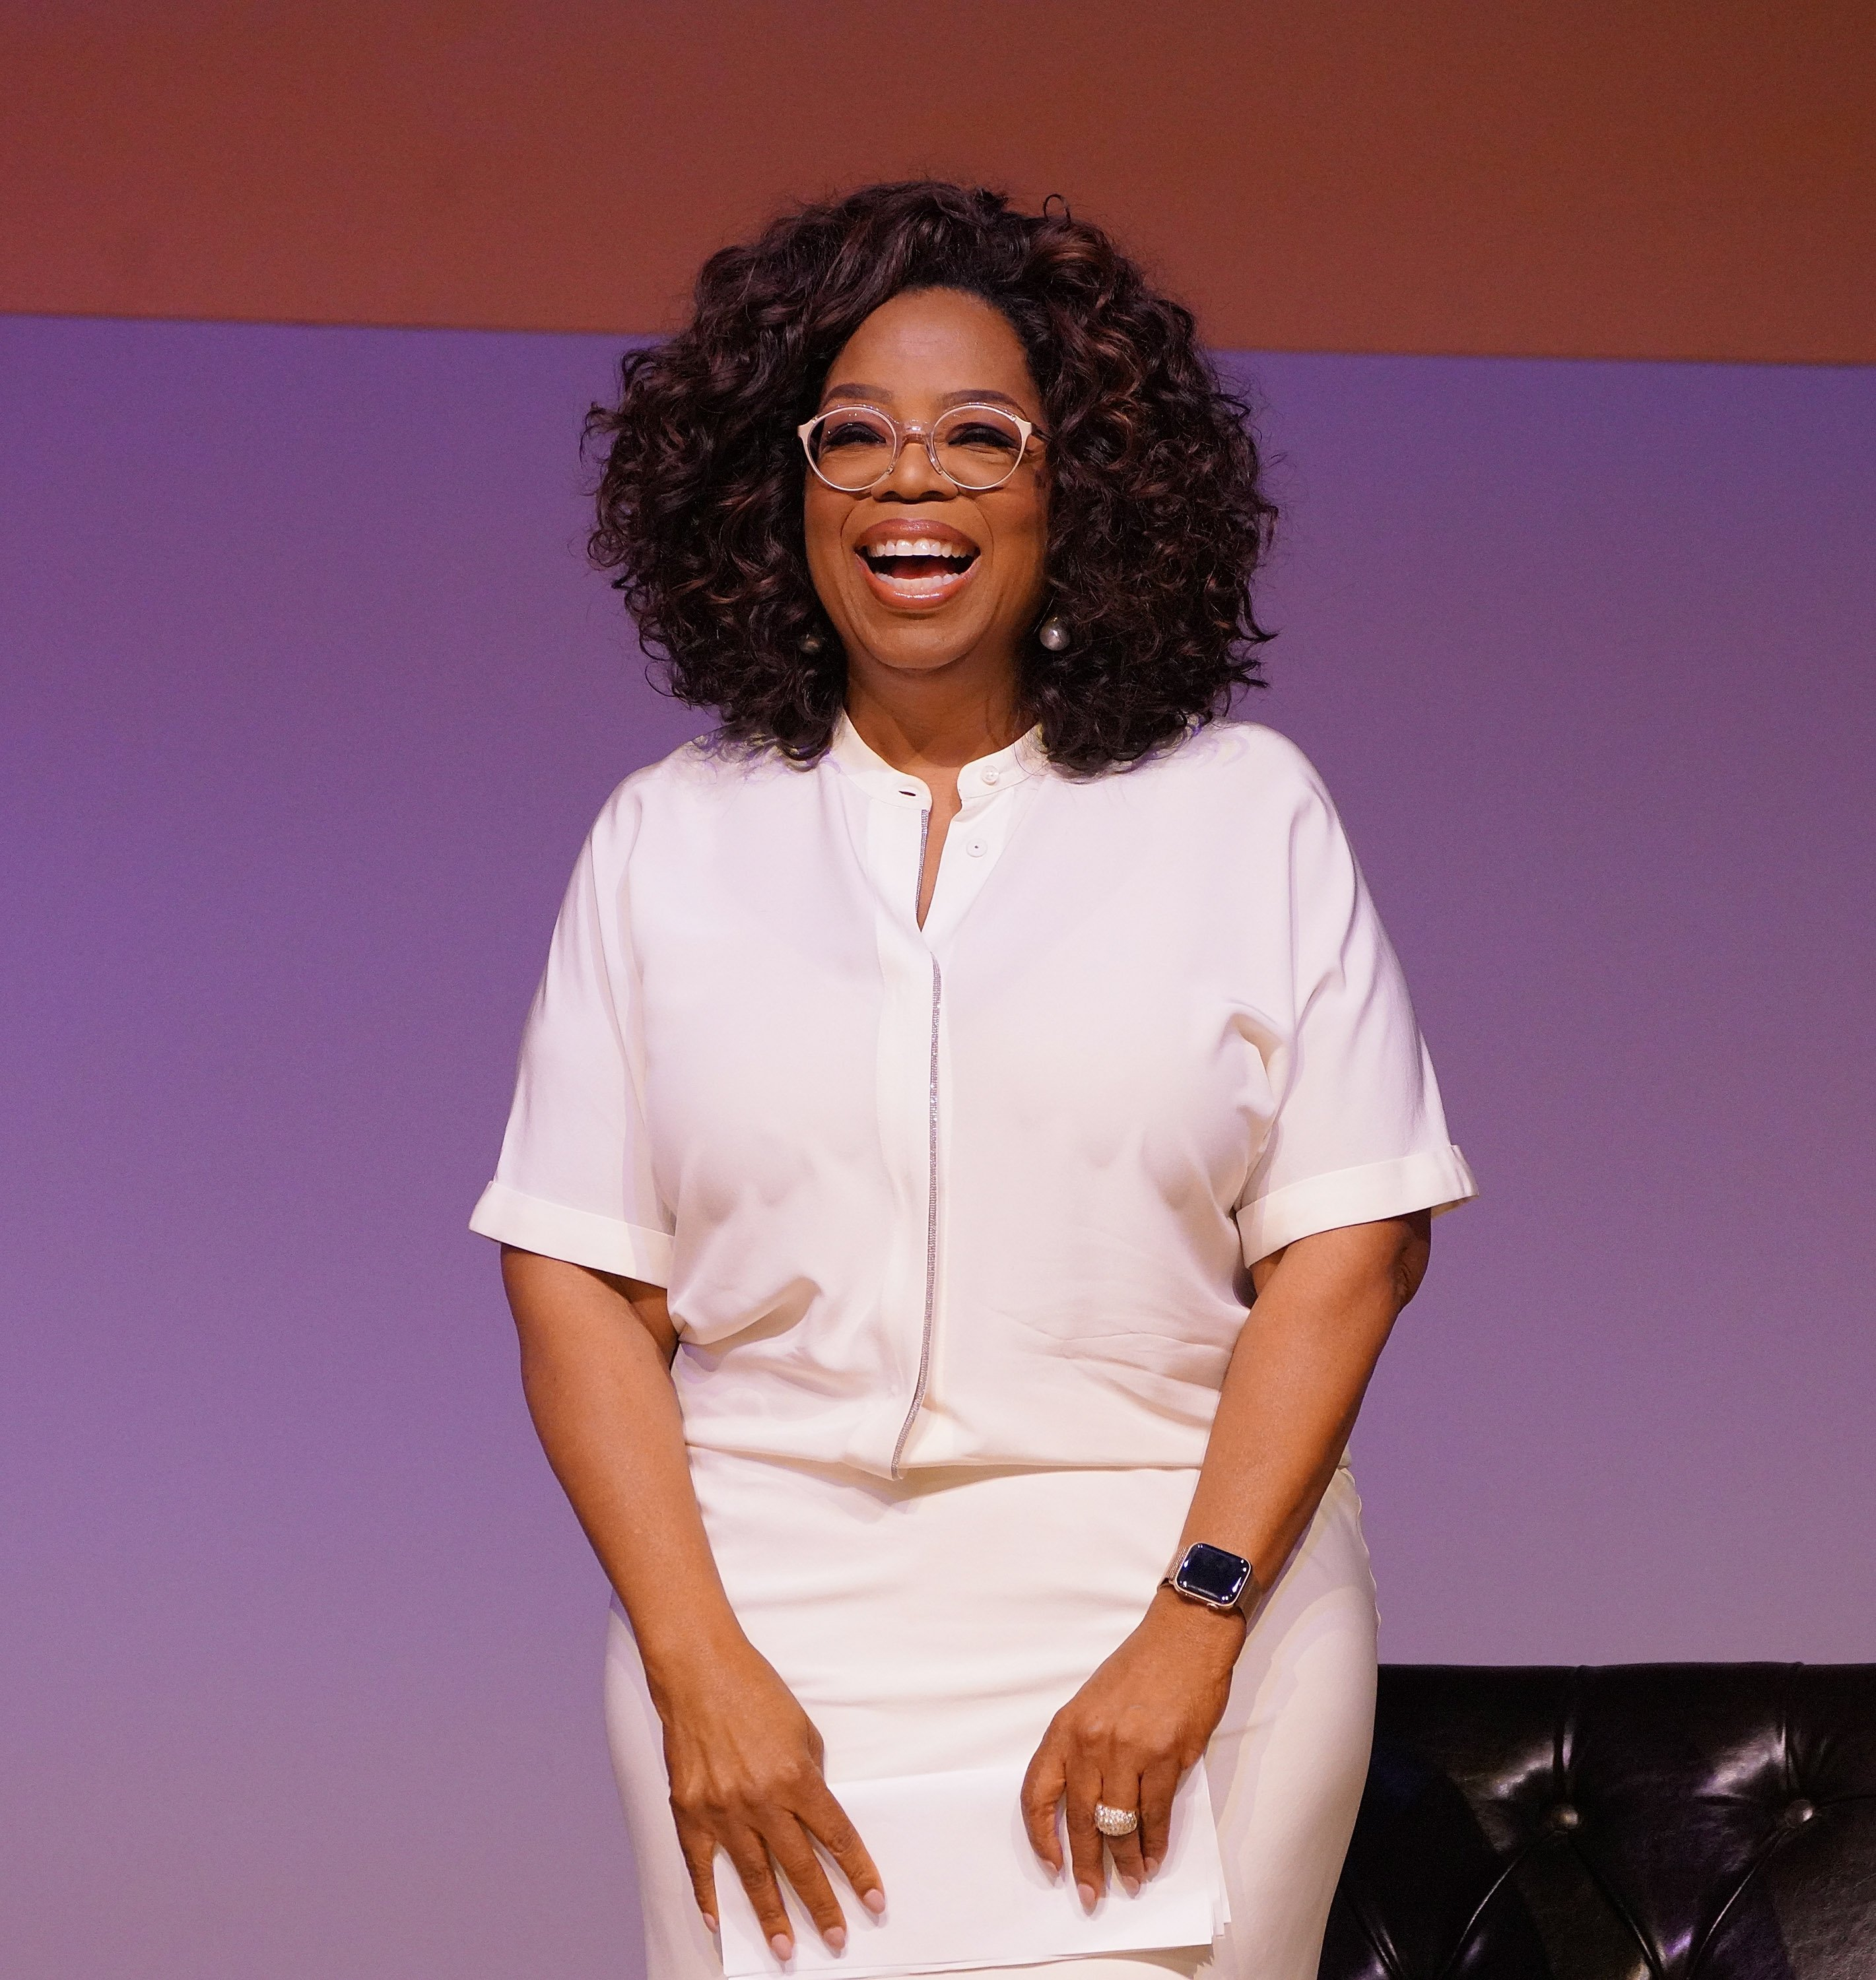 Oprah Winfrey, 29. November 2018 in Johannesburg, Südafrika | Quelle: Getty Images